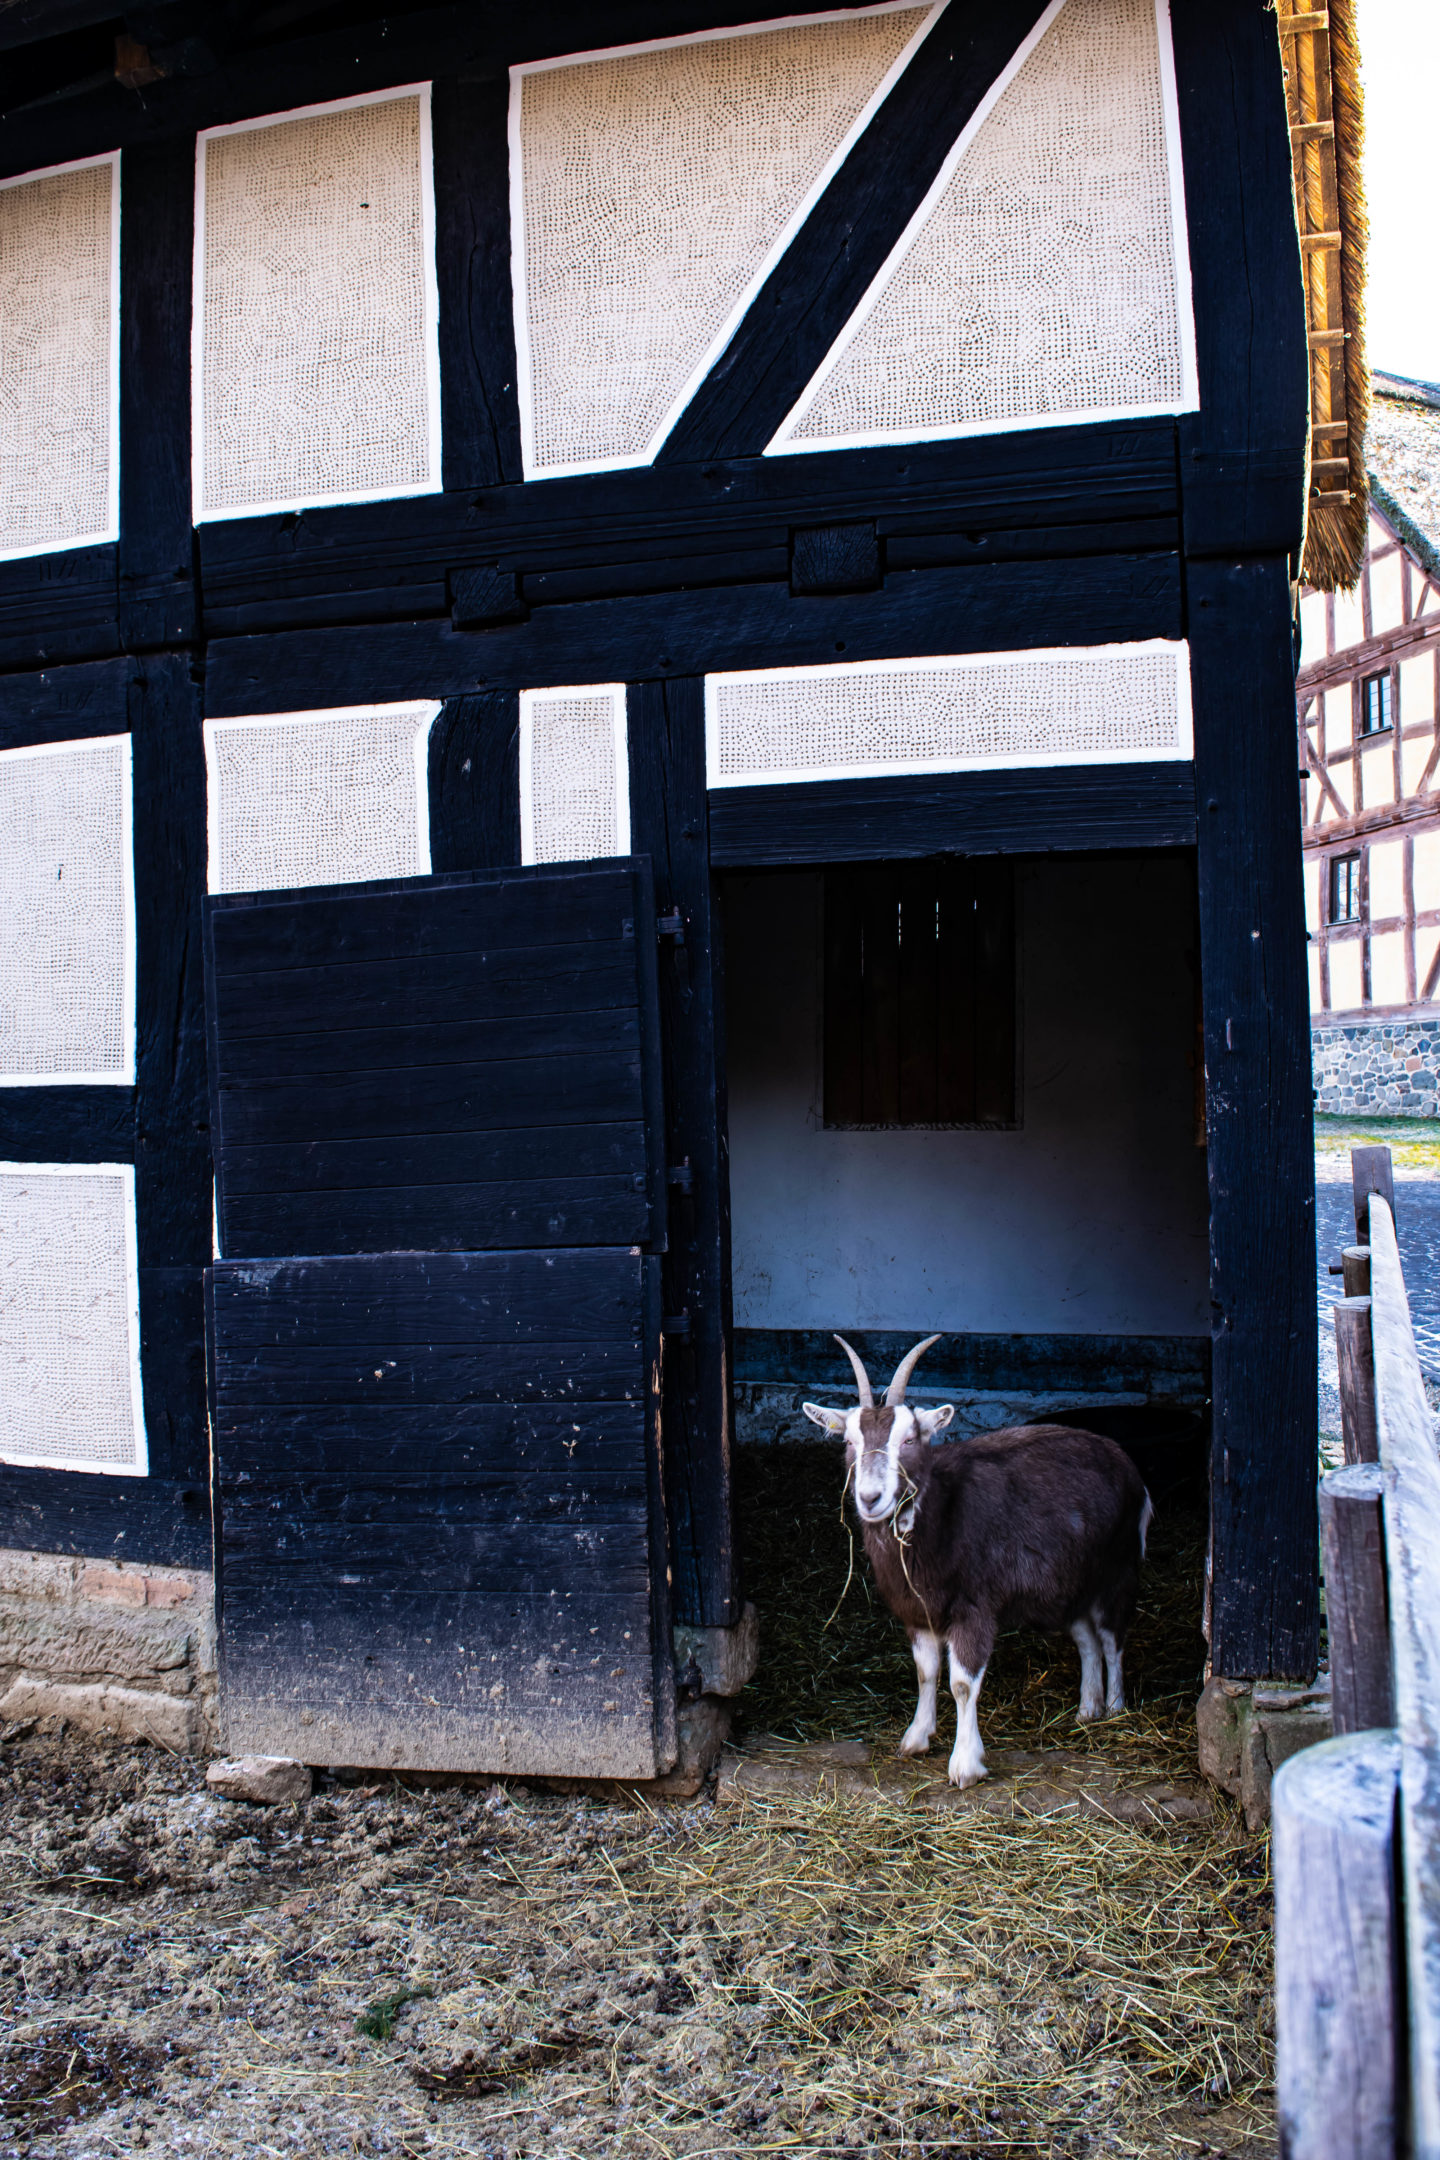 A Thuringian goat completely uninterested in getting its photo taken.